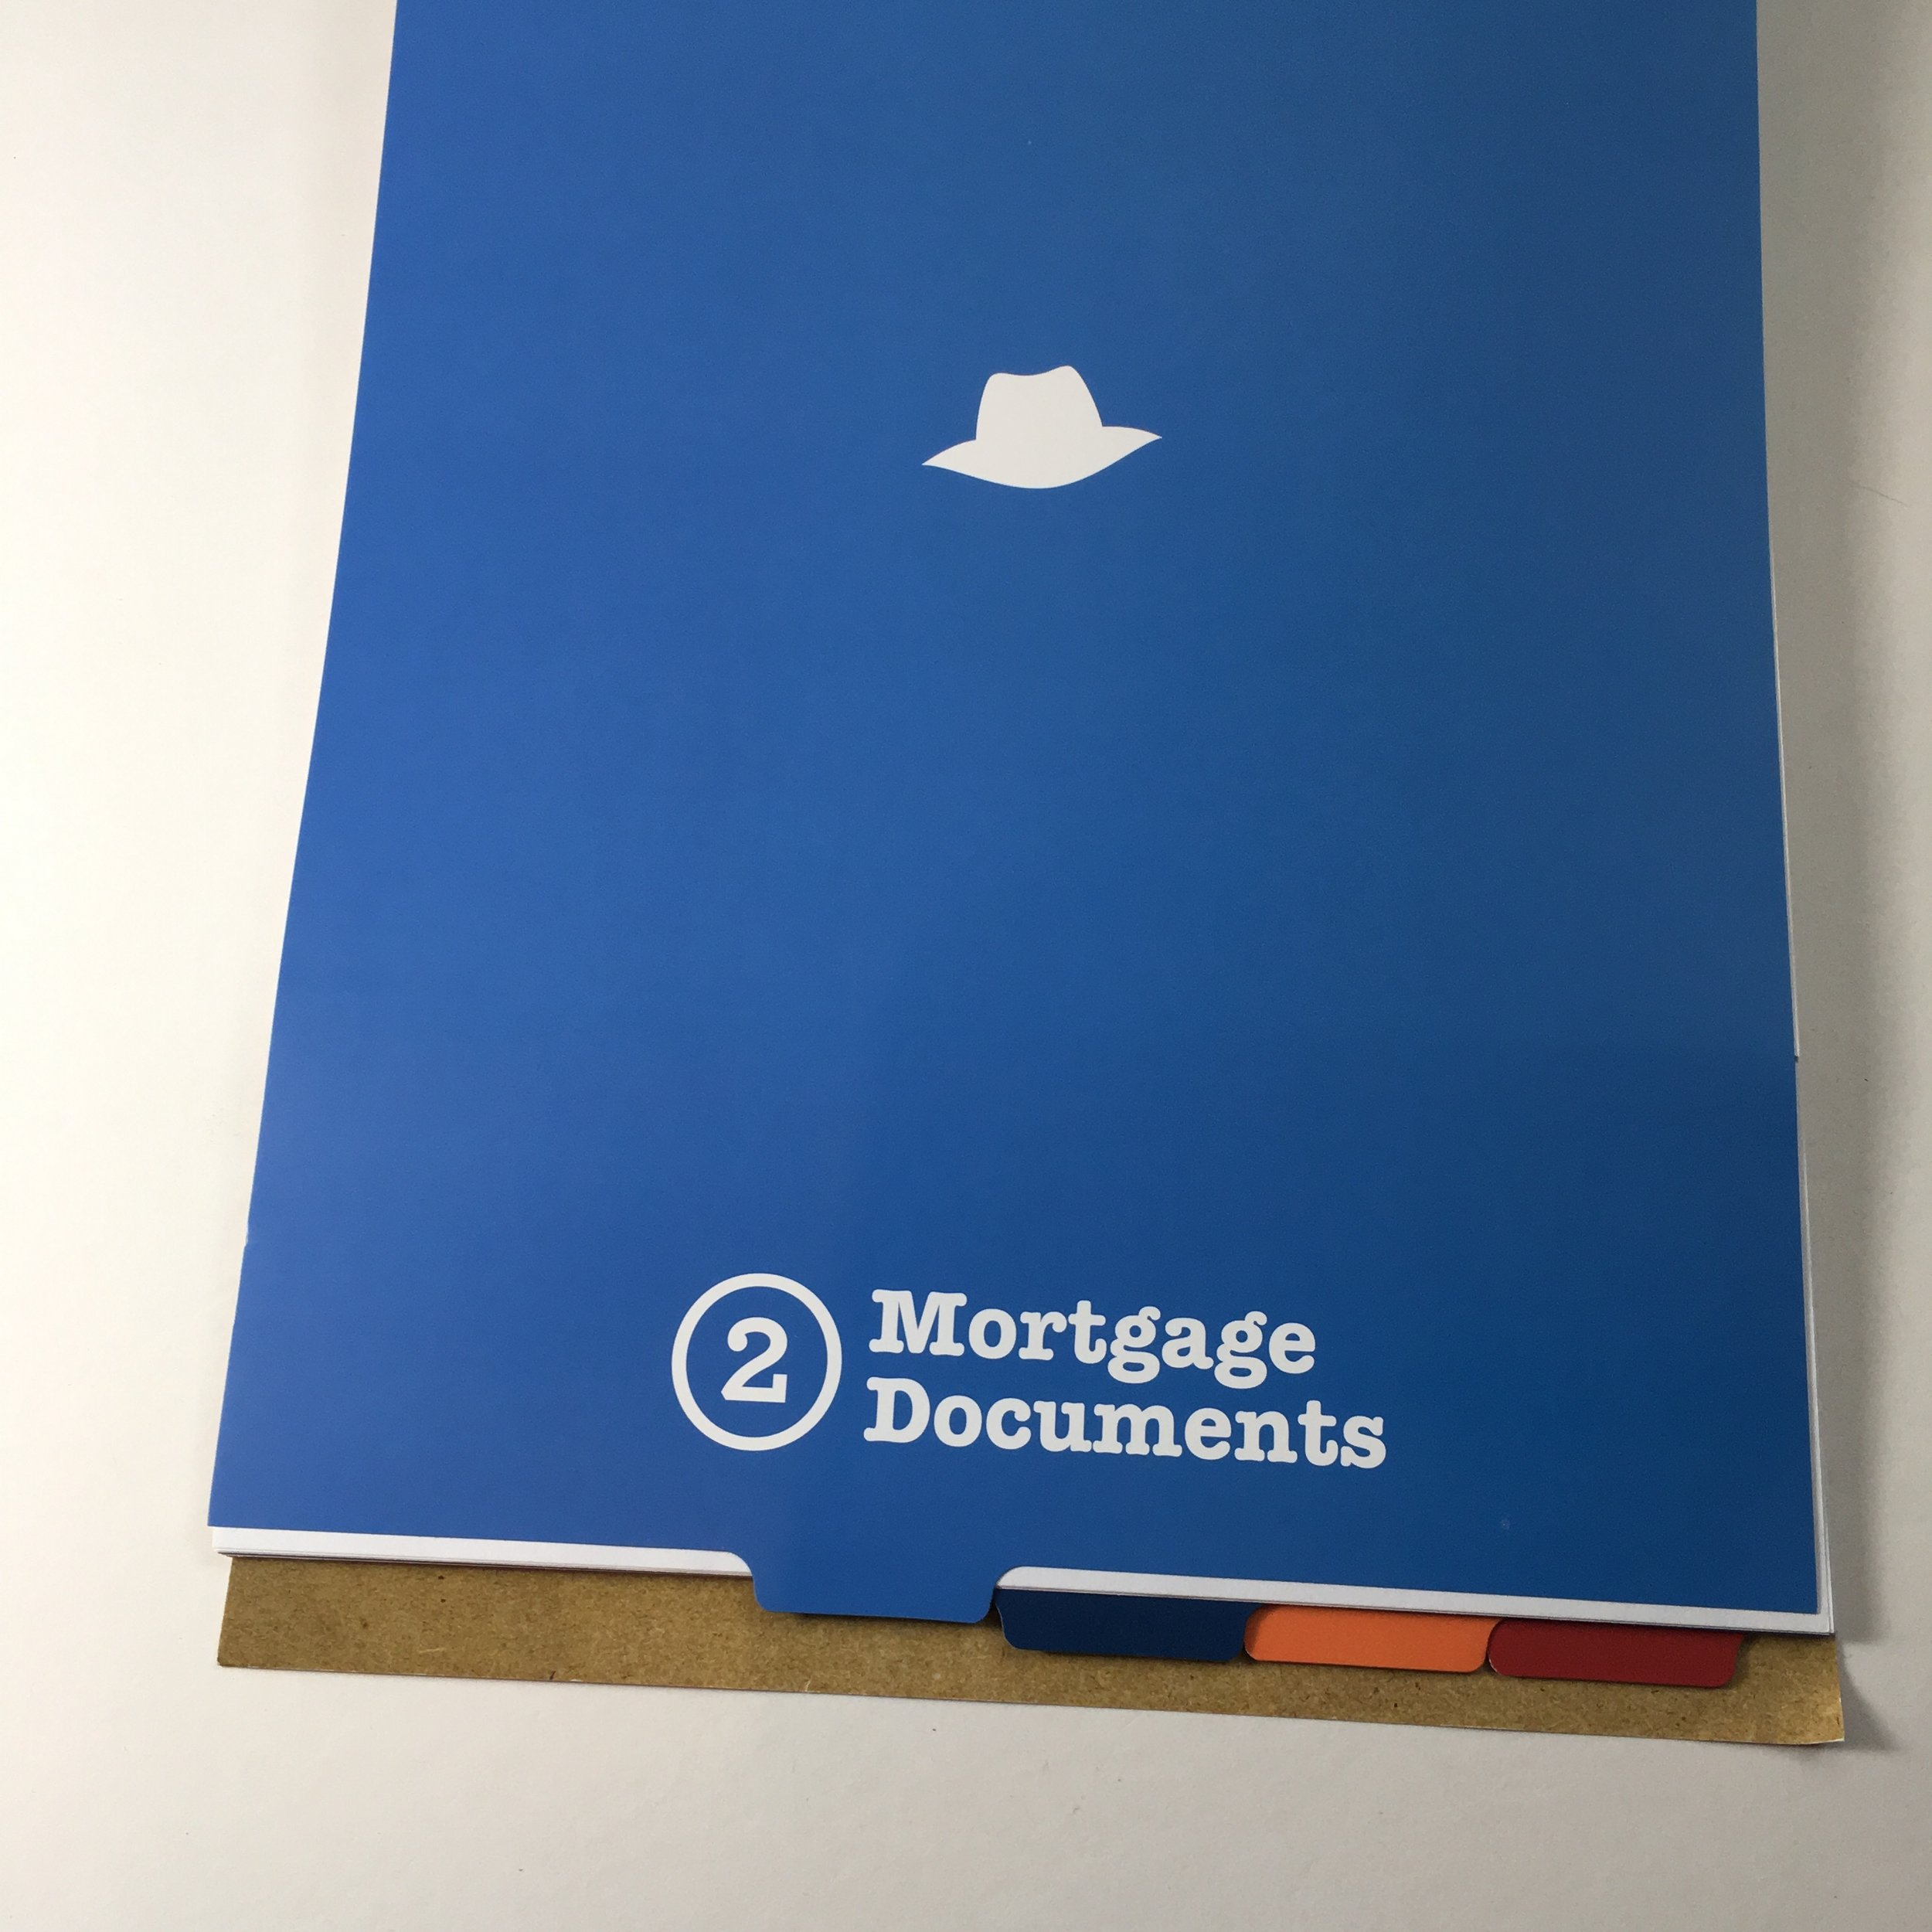 Quicken-Loans-Mortgage-Possible-Closing-Mortgage-Documents.JPG